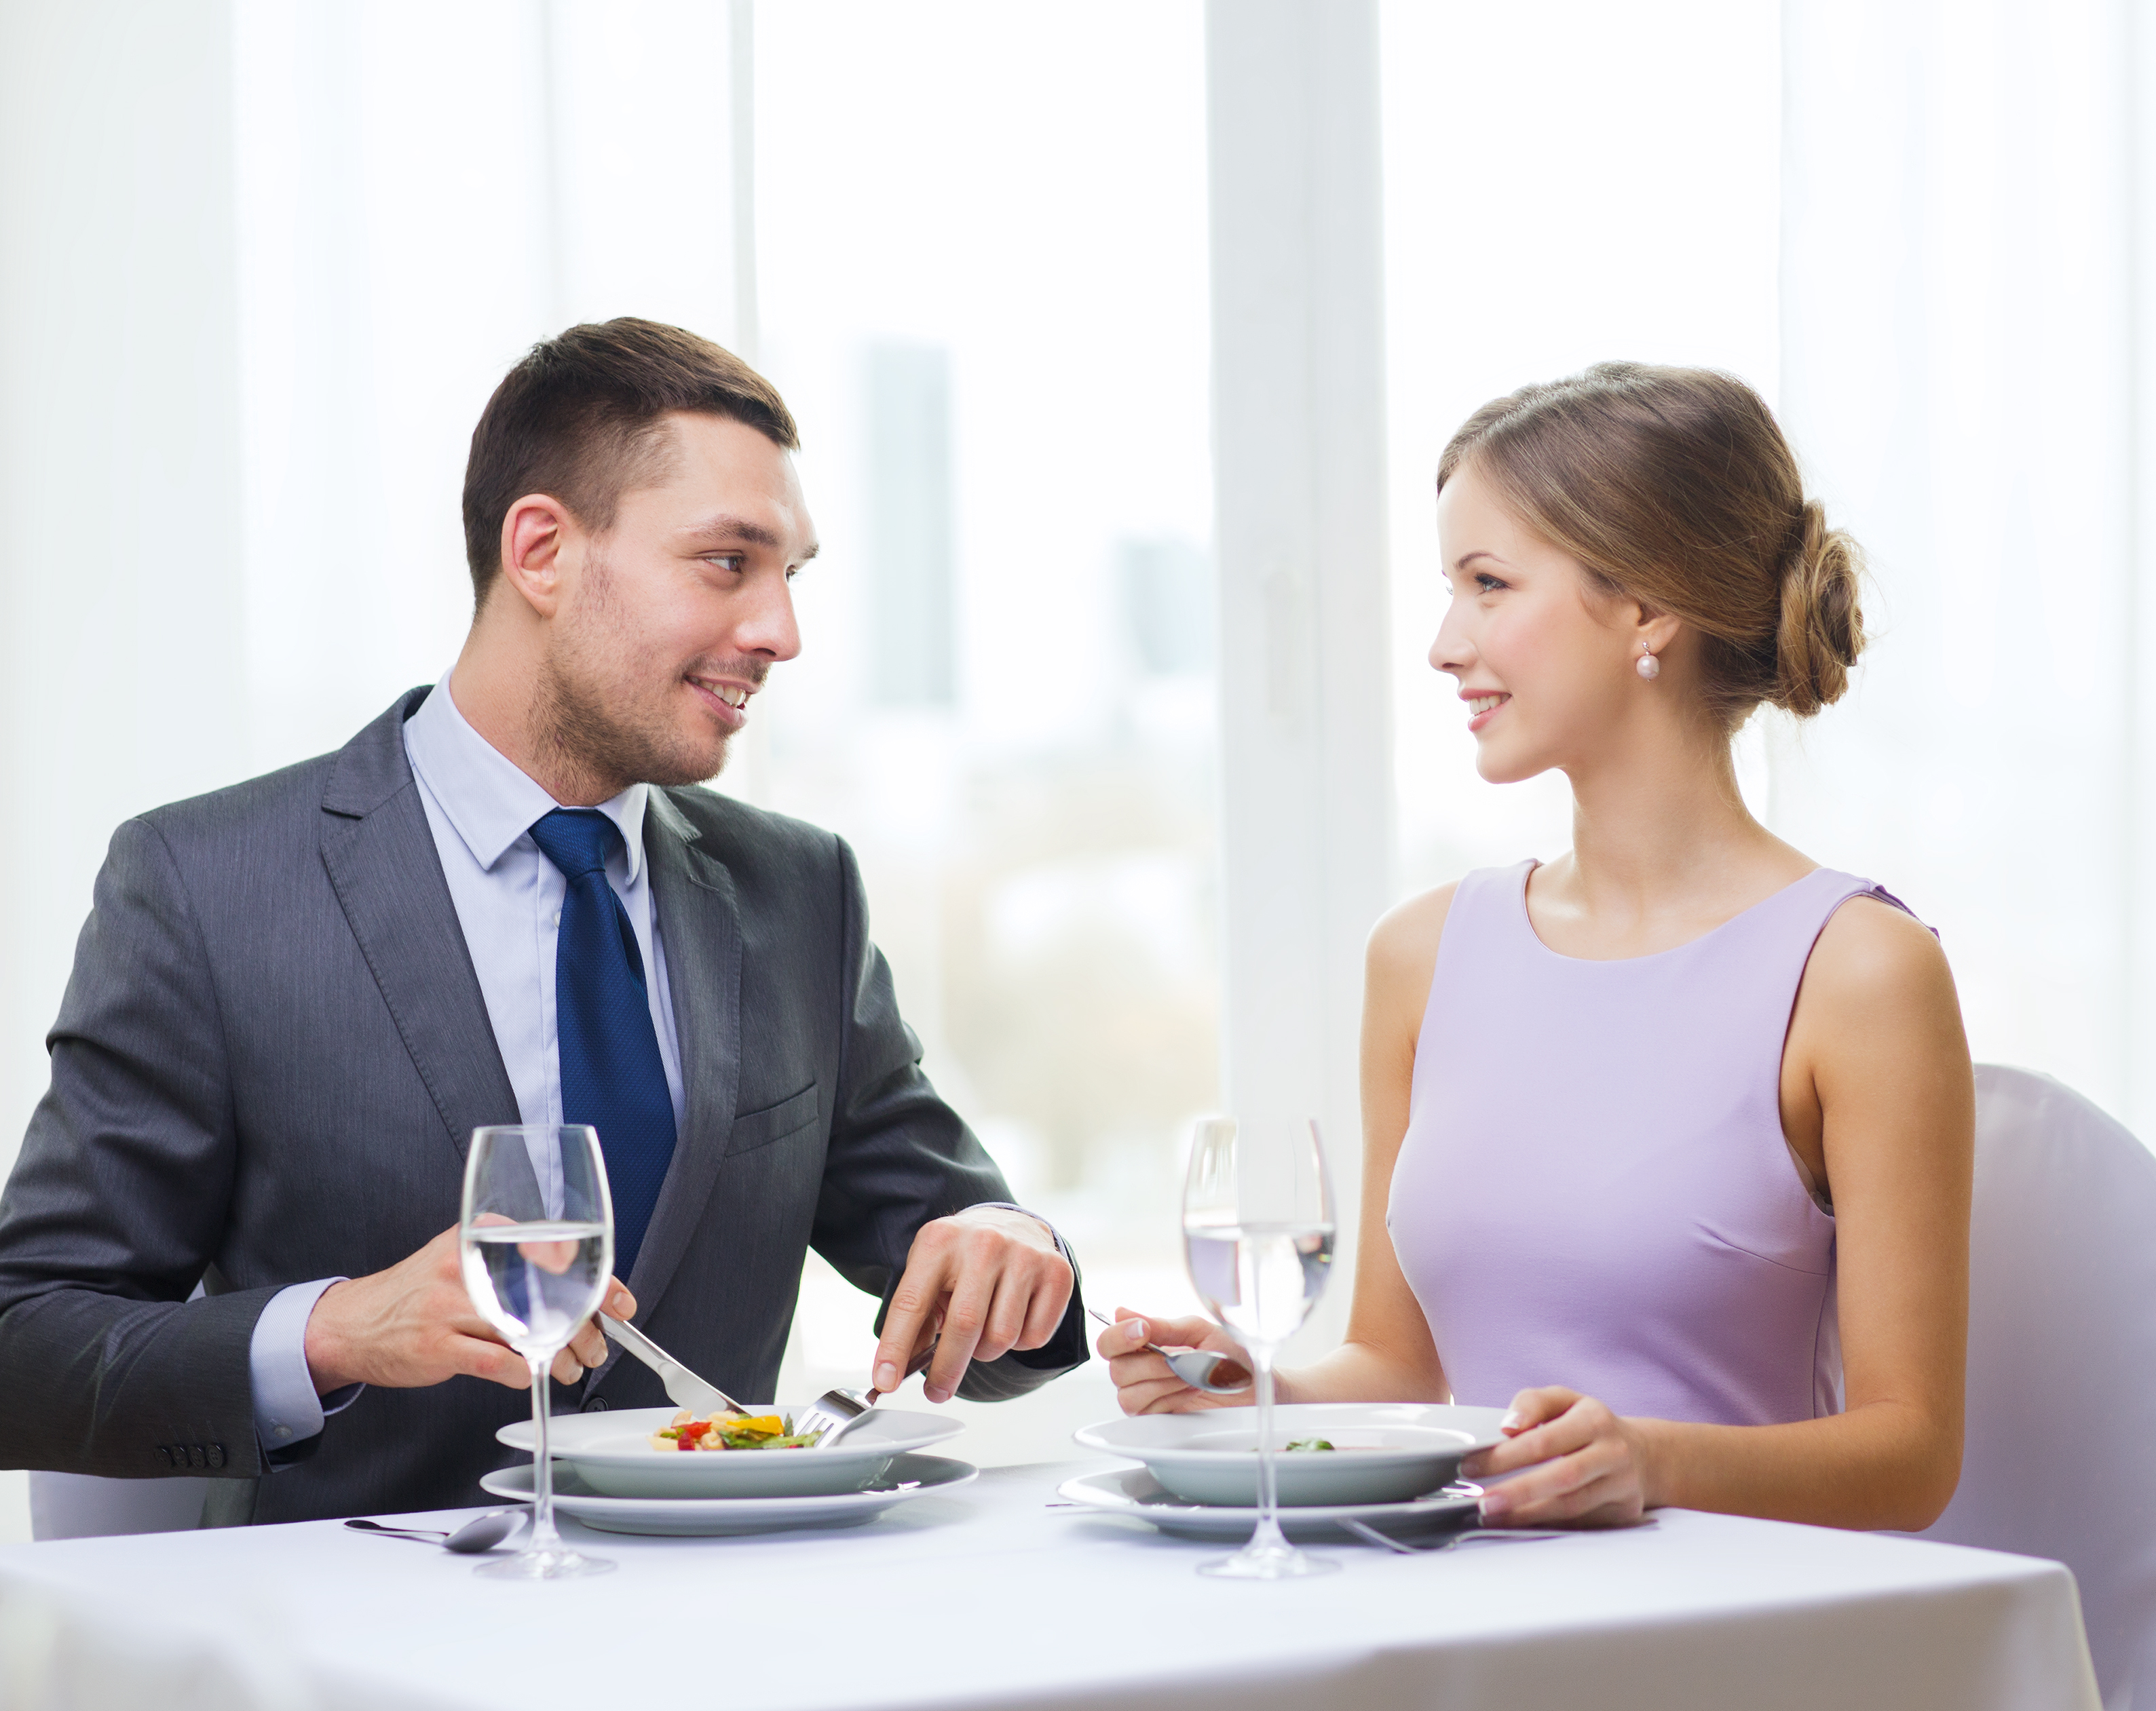 restaurant, couple and holiday concept - smiling couple eating appetizers at restaurant